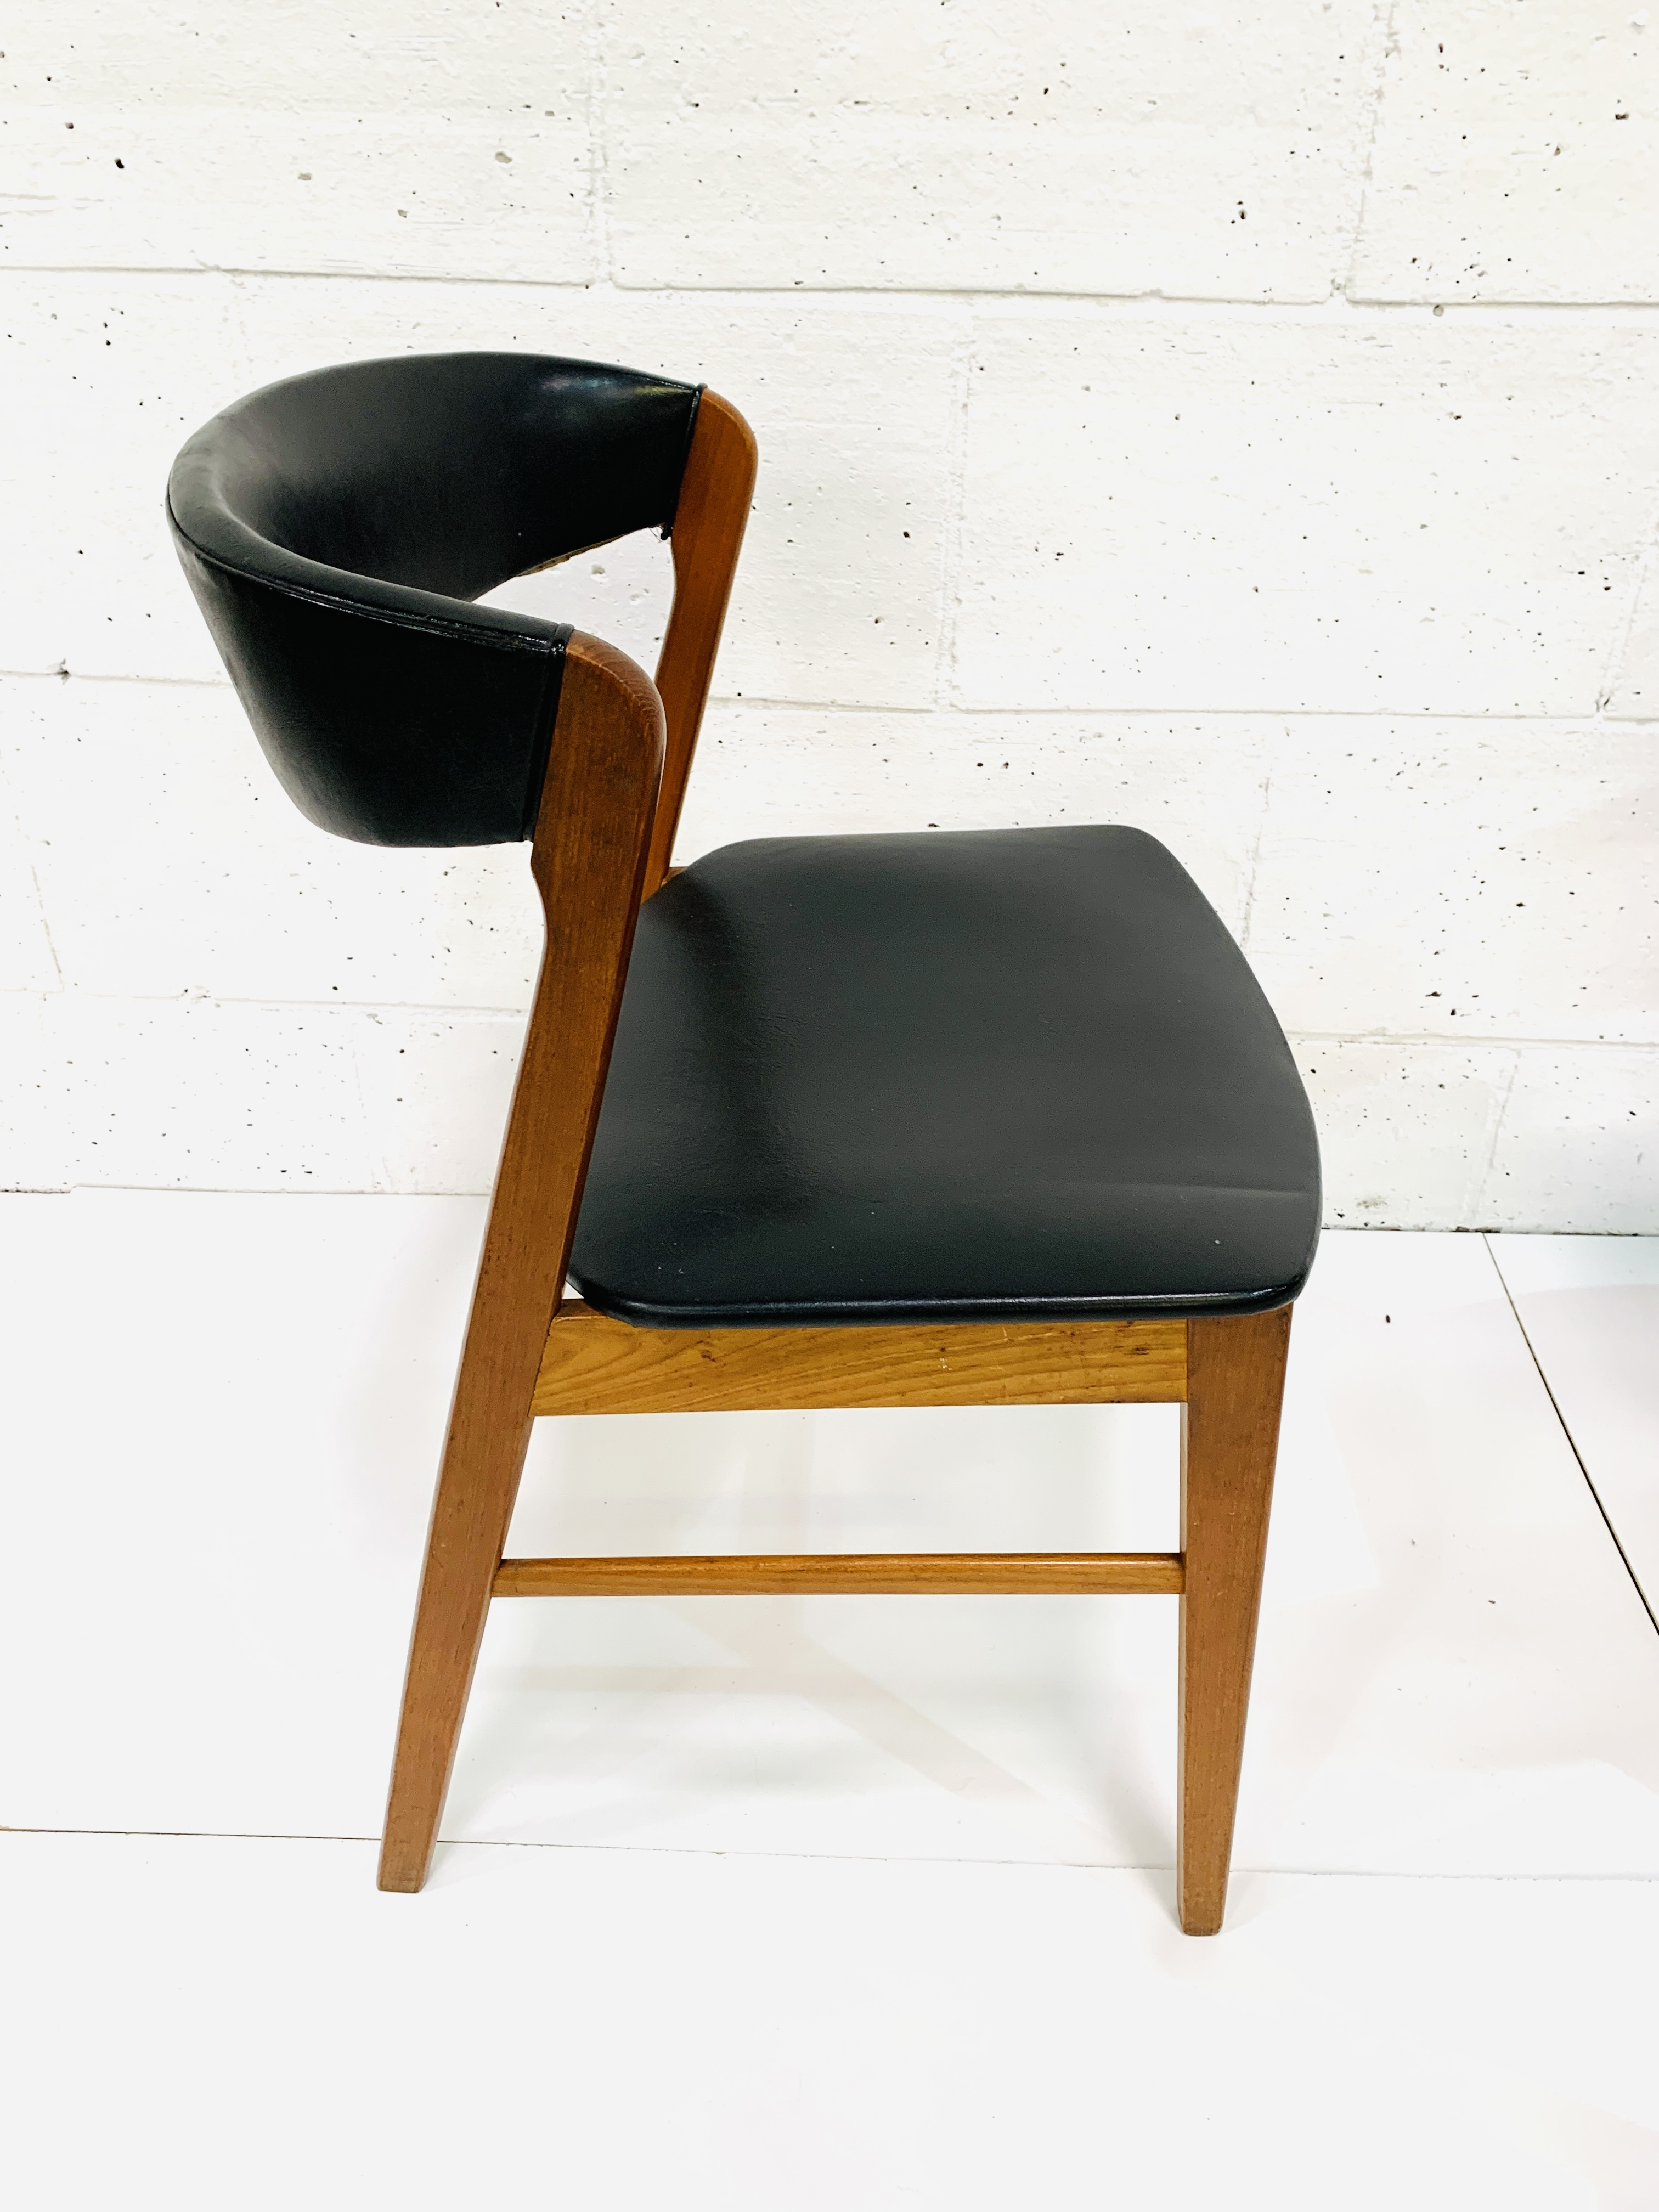 Six 1960's teak framed chairs - Image 7 of 7